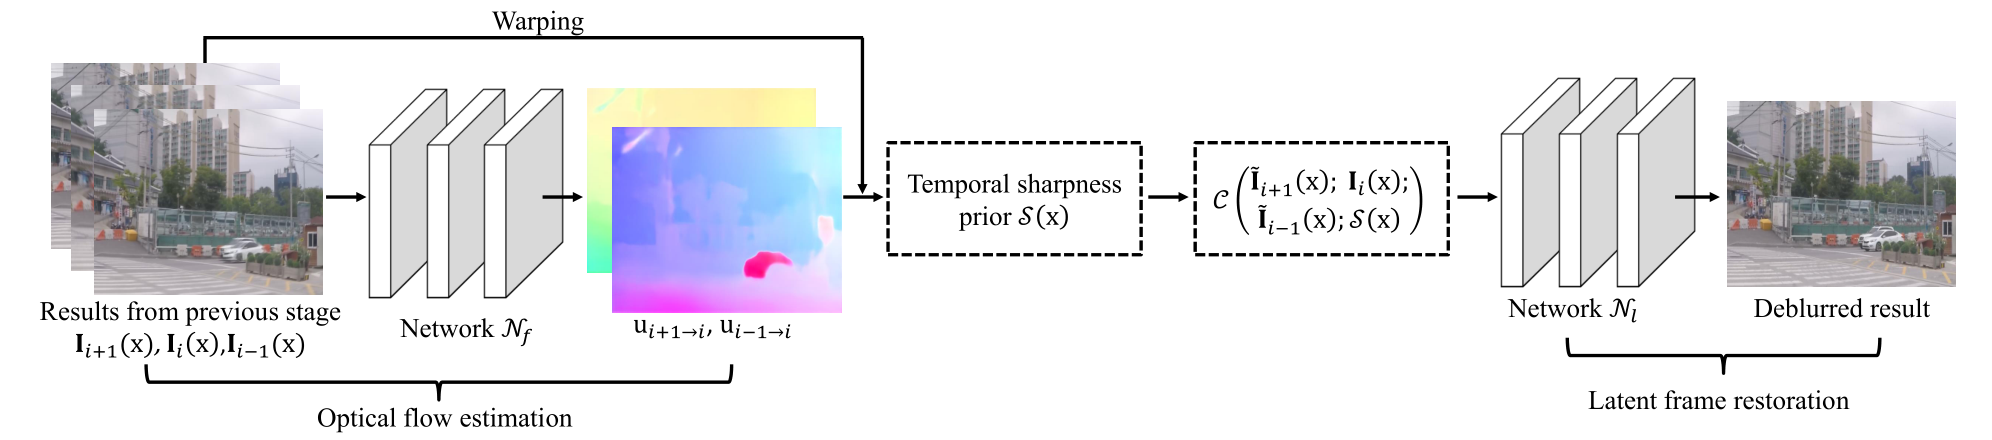 Supp-Figure 1. An overview of the proposed method at one stage.